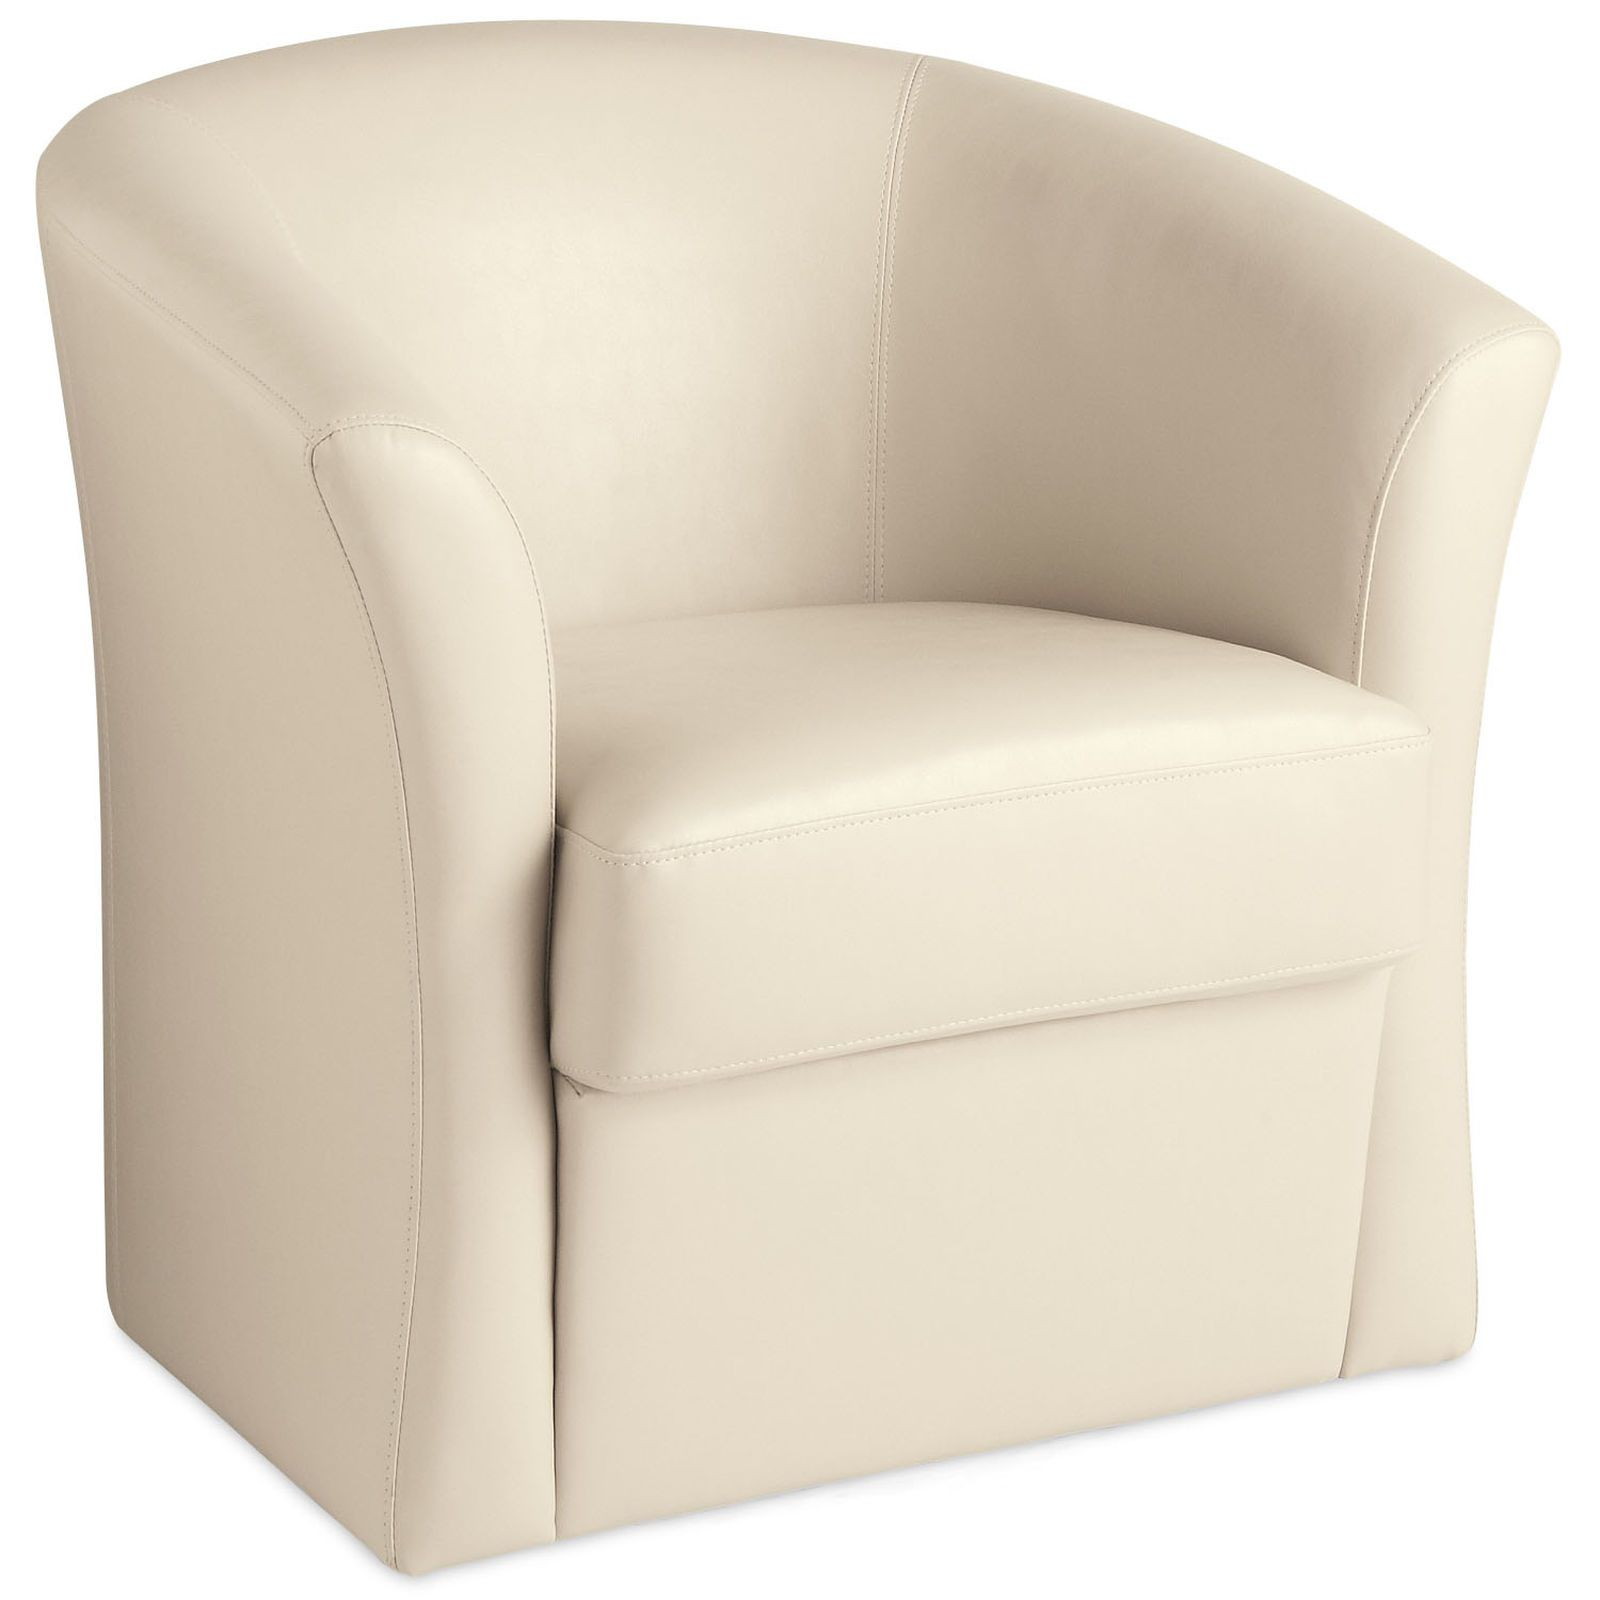 Let's face it. Chairs that can spin around in circles are ...